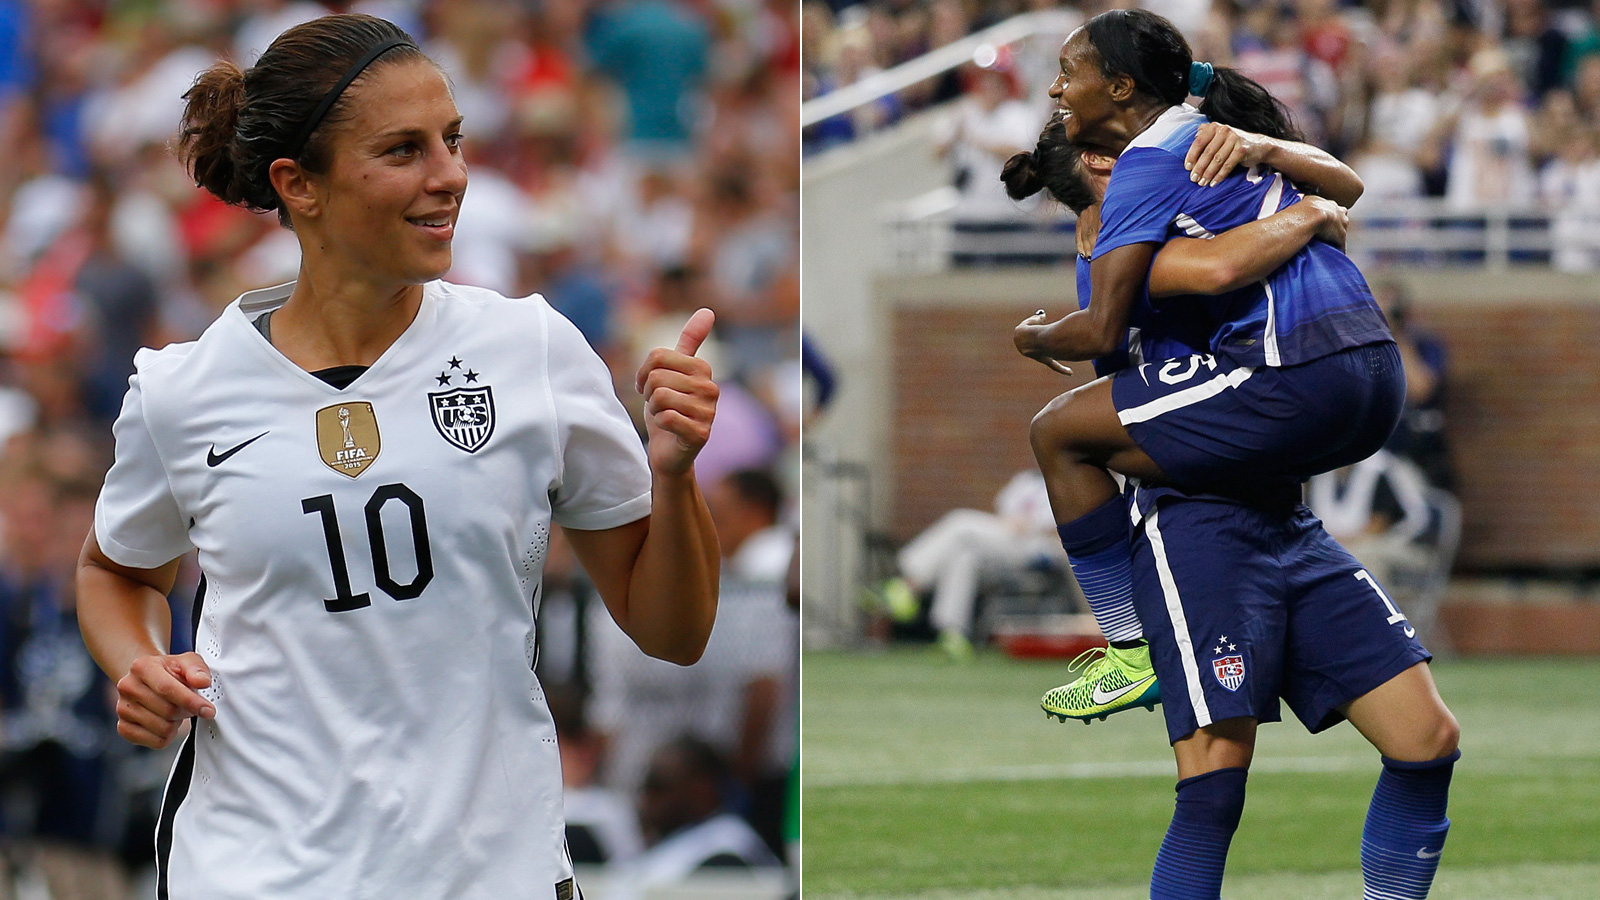 Carli Lloyd scored hat tricks in both games and NWSL Golden Boot winner Crystal Dunn scored her first international goals as the USWNT beat Haiti 5-0 and 8-0 in a pair of friendlies in Detroit and Birmingham, Alabama. Haiti replaced on-strike Australia as a last-minute opponent.